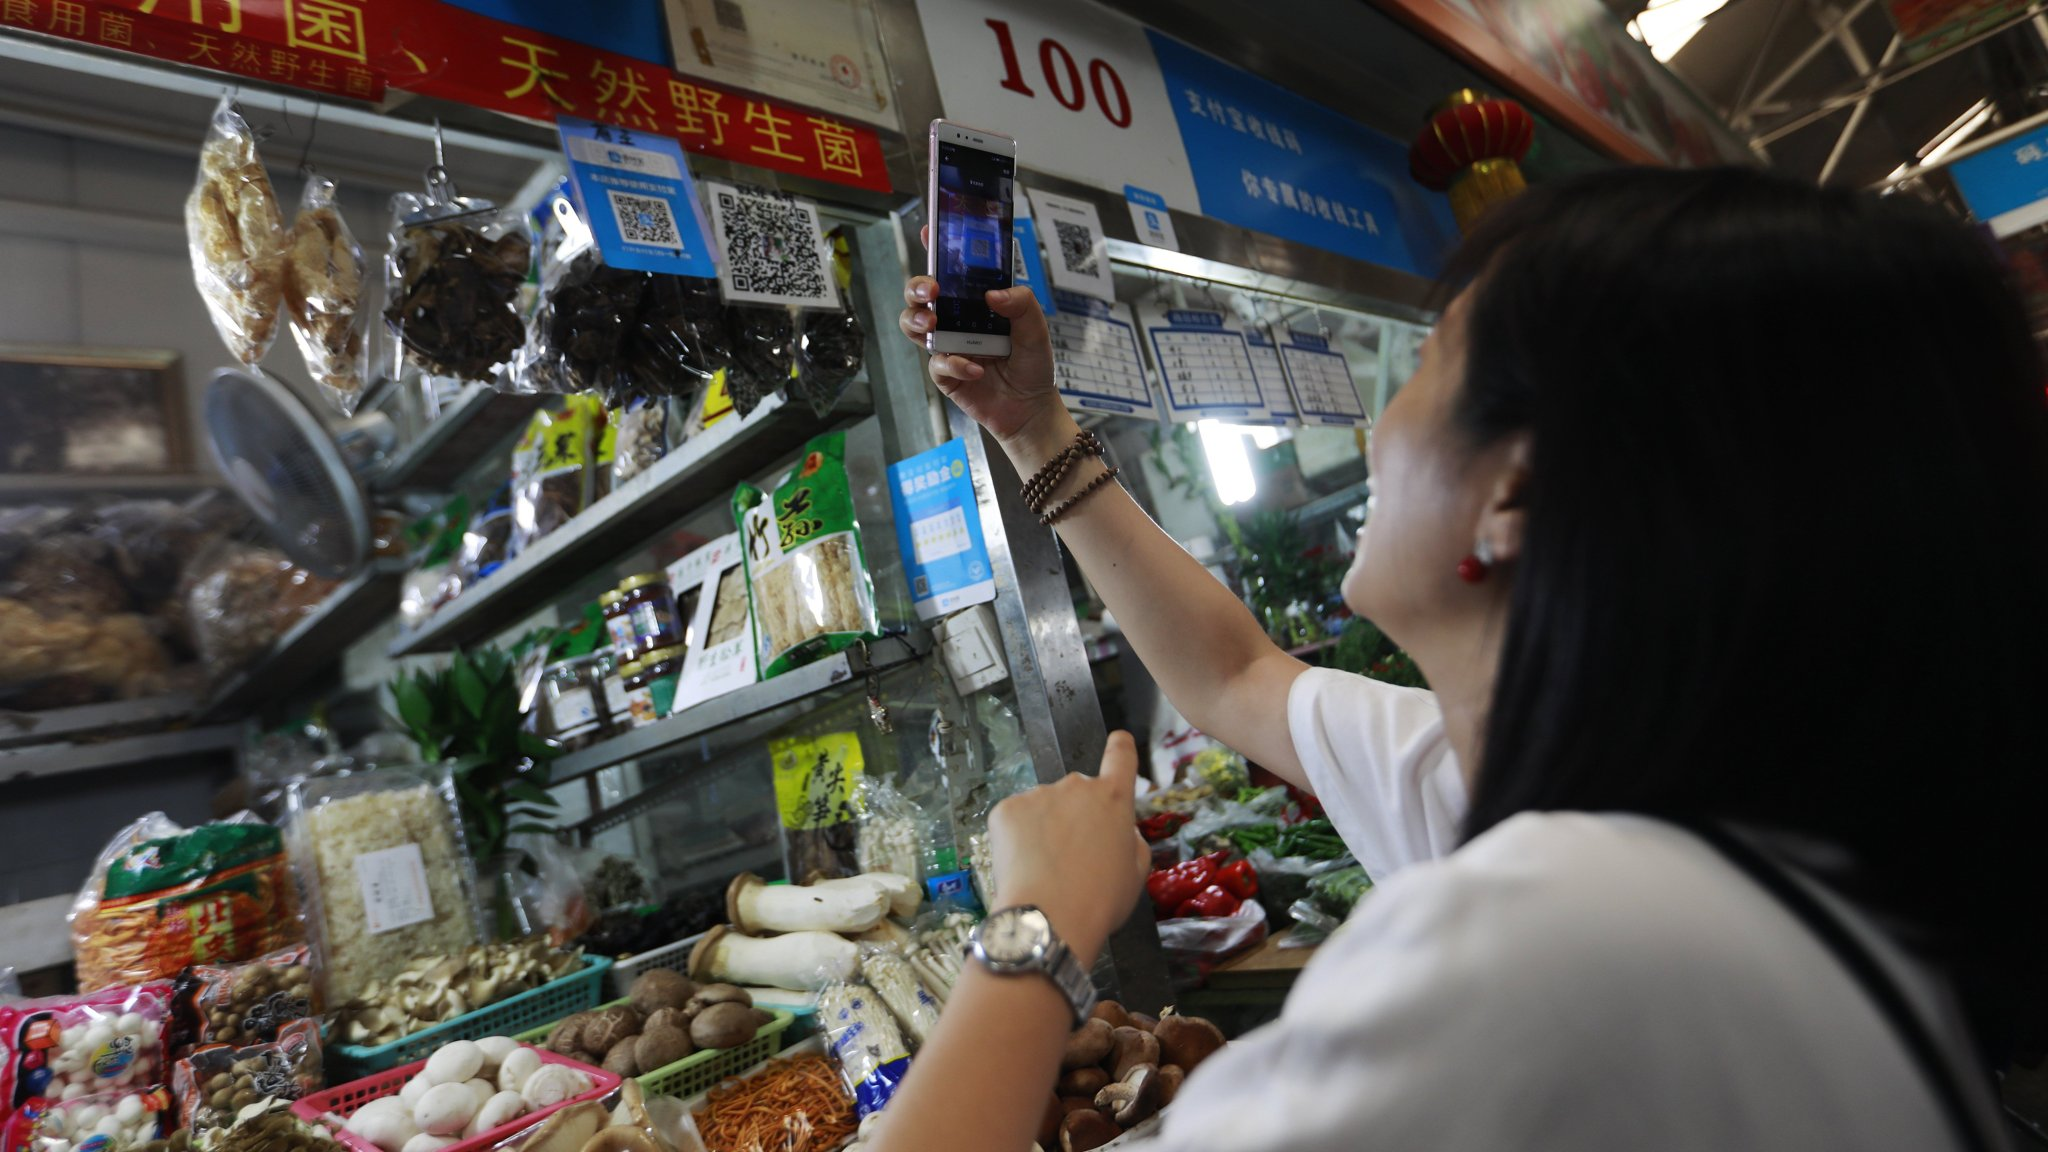 Tencent and Alipay set to lose $1bn in revenue from payment